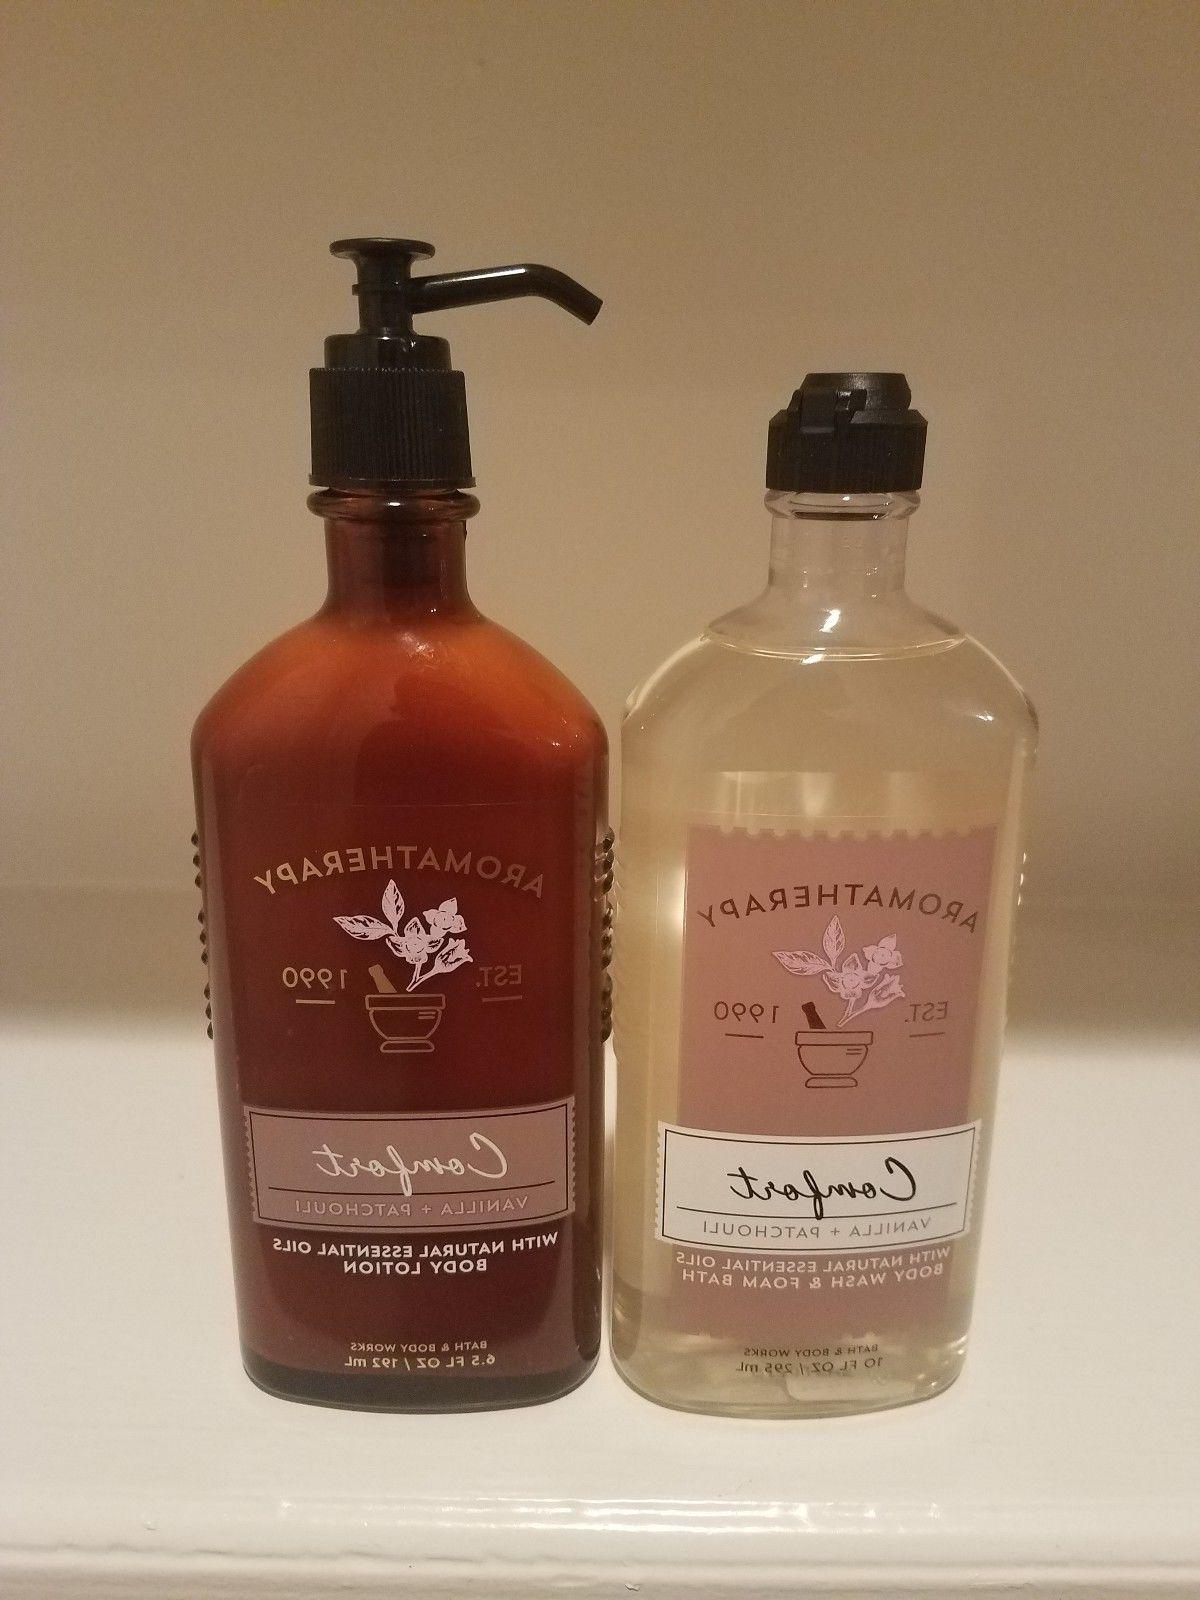 Bath & Body Works Aromatherapy Comfort Body Wash and Body Lo